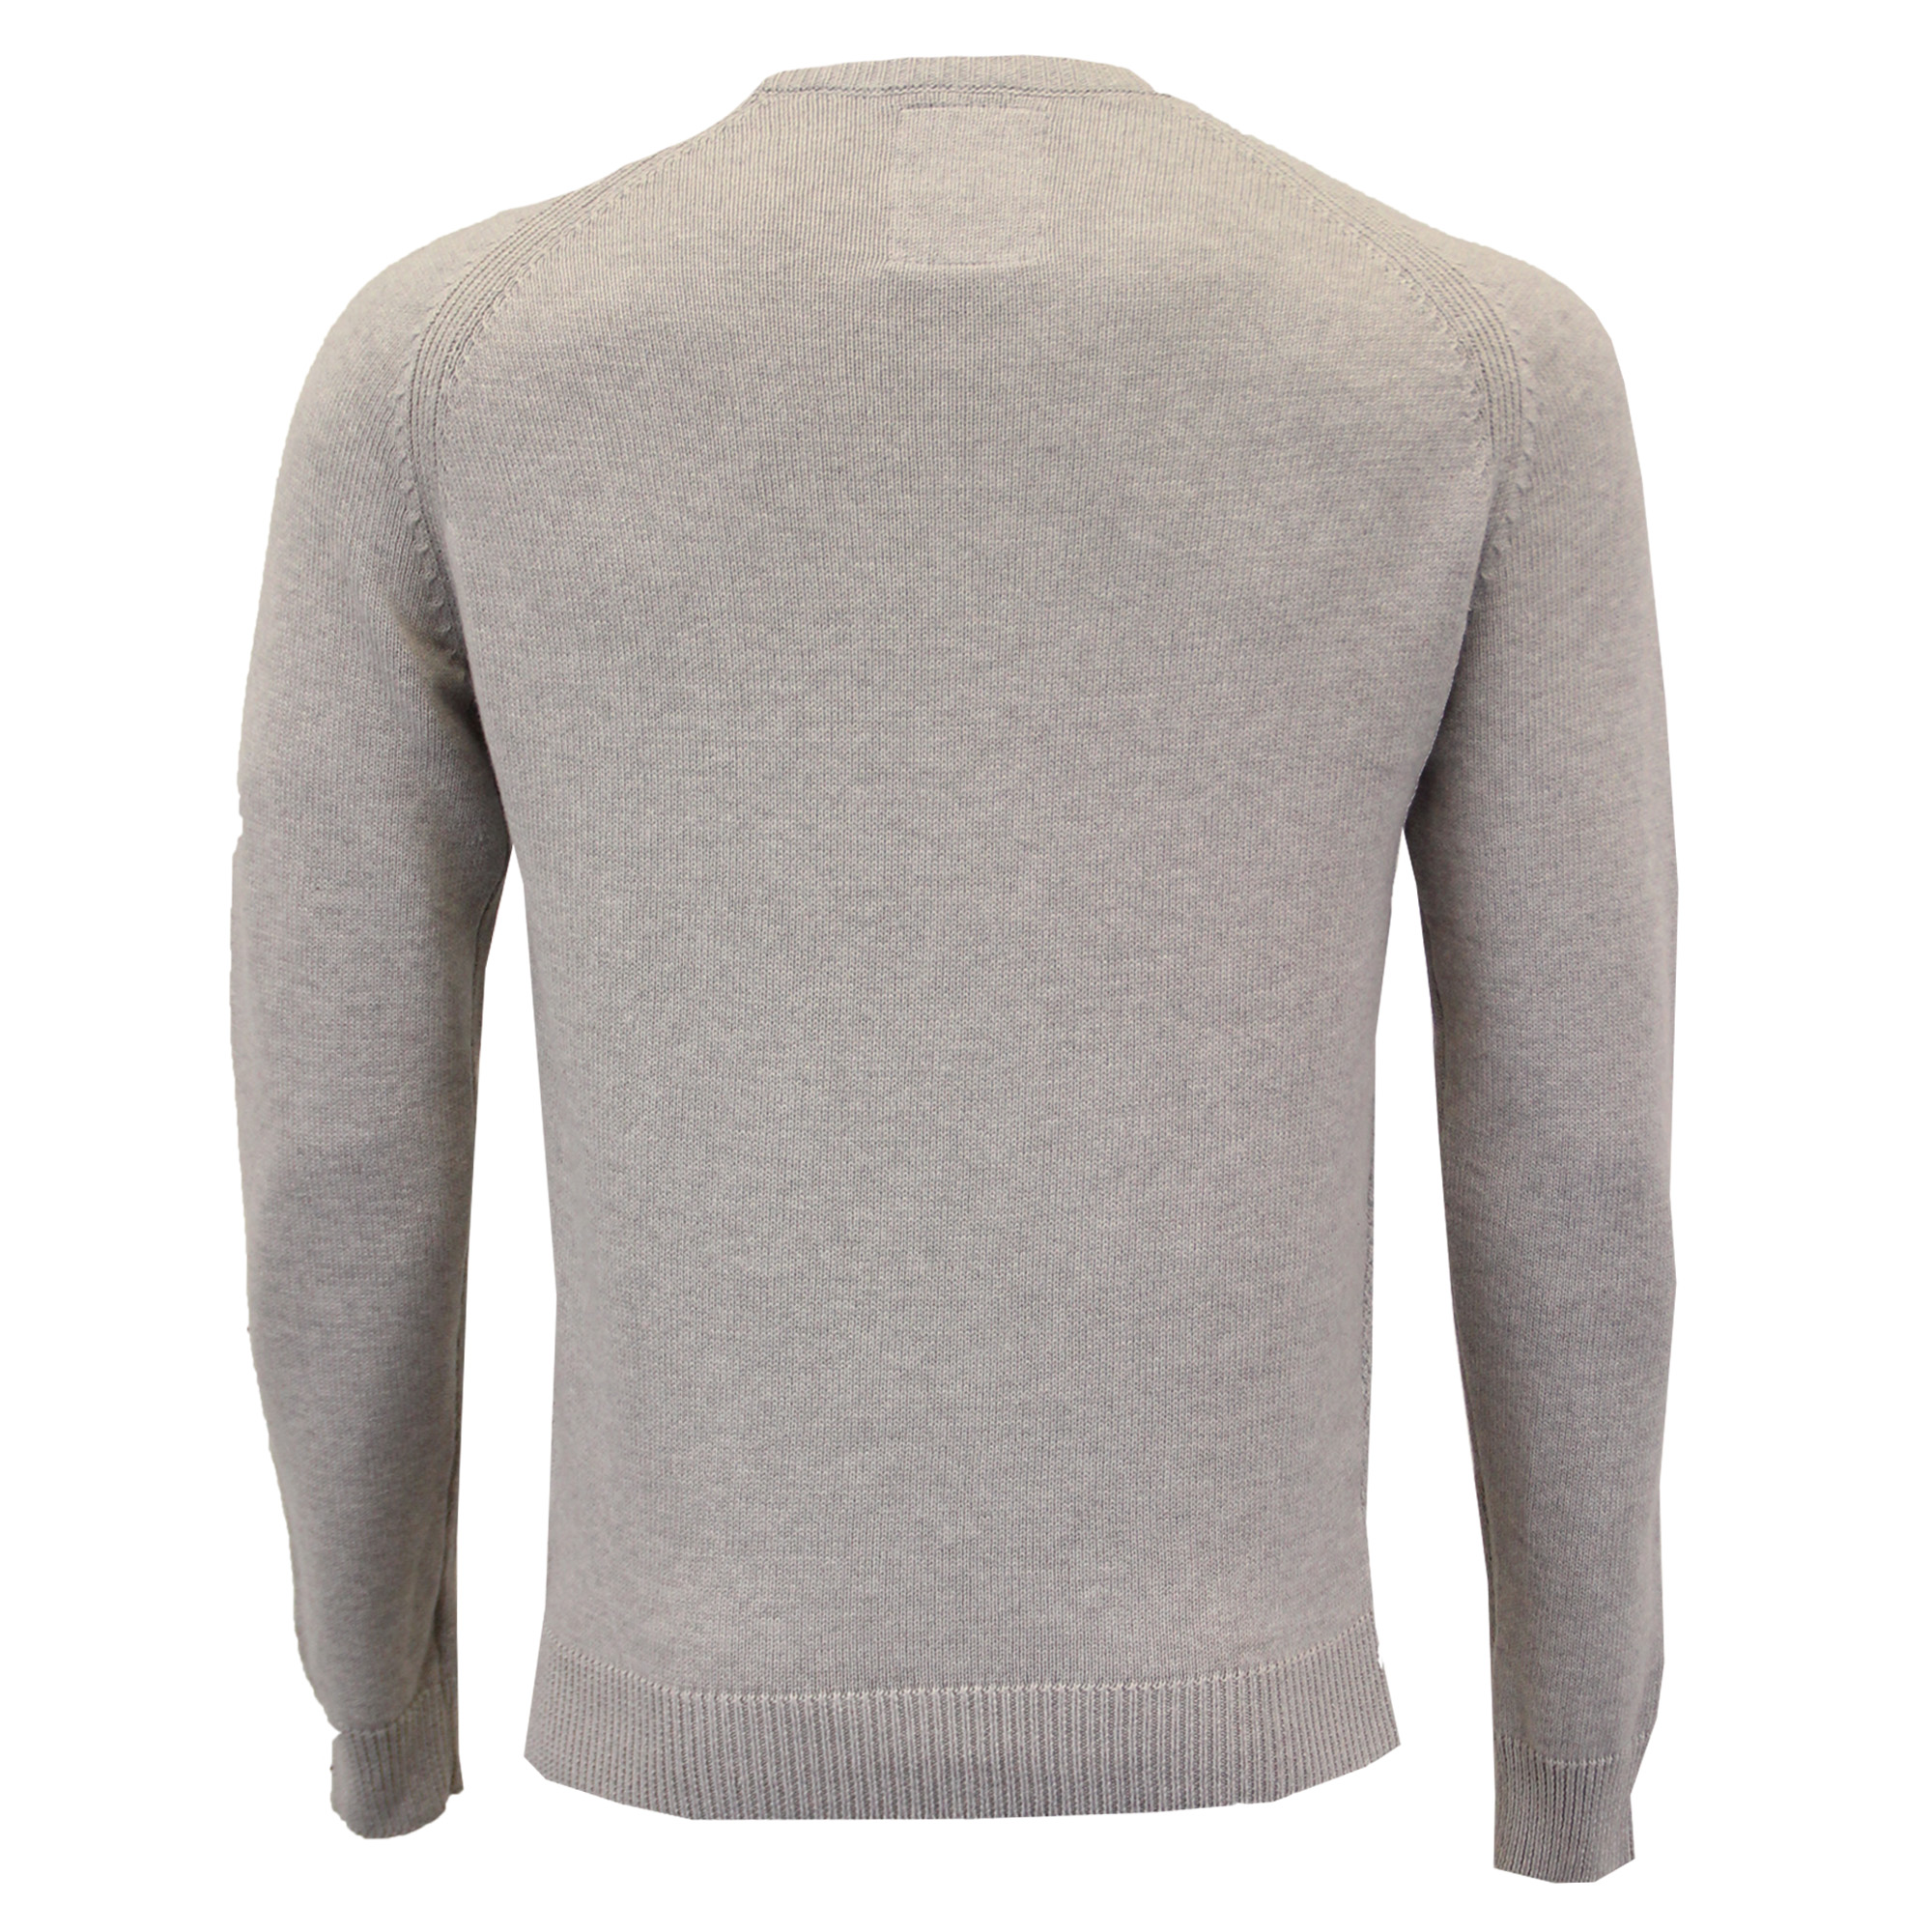 Mens-Jumper-Threadbare-Knitted-Cotton-Sweater-Half-Zip-Pullover-Top-Winter-New thumbnail 19